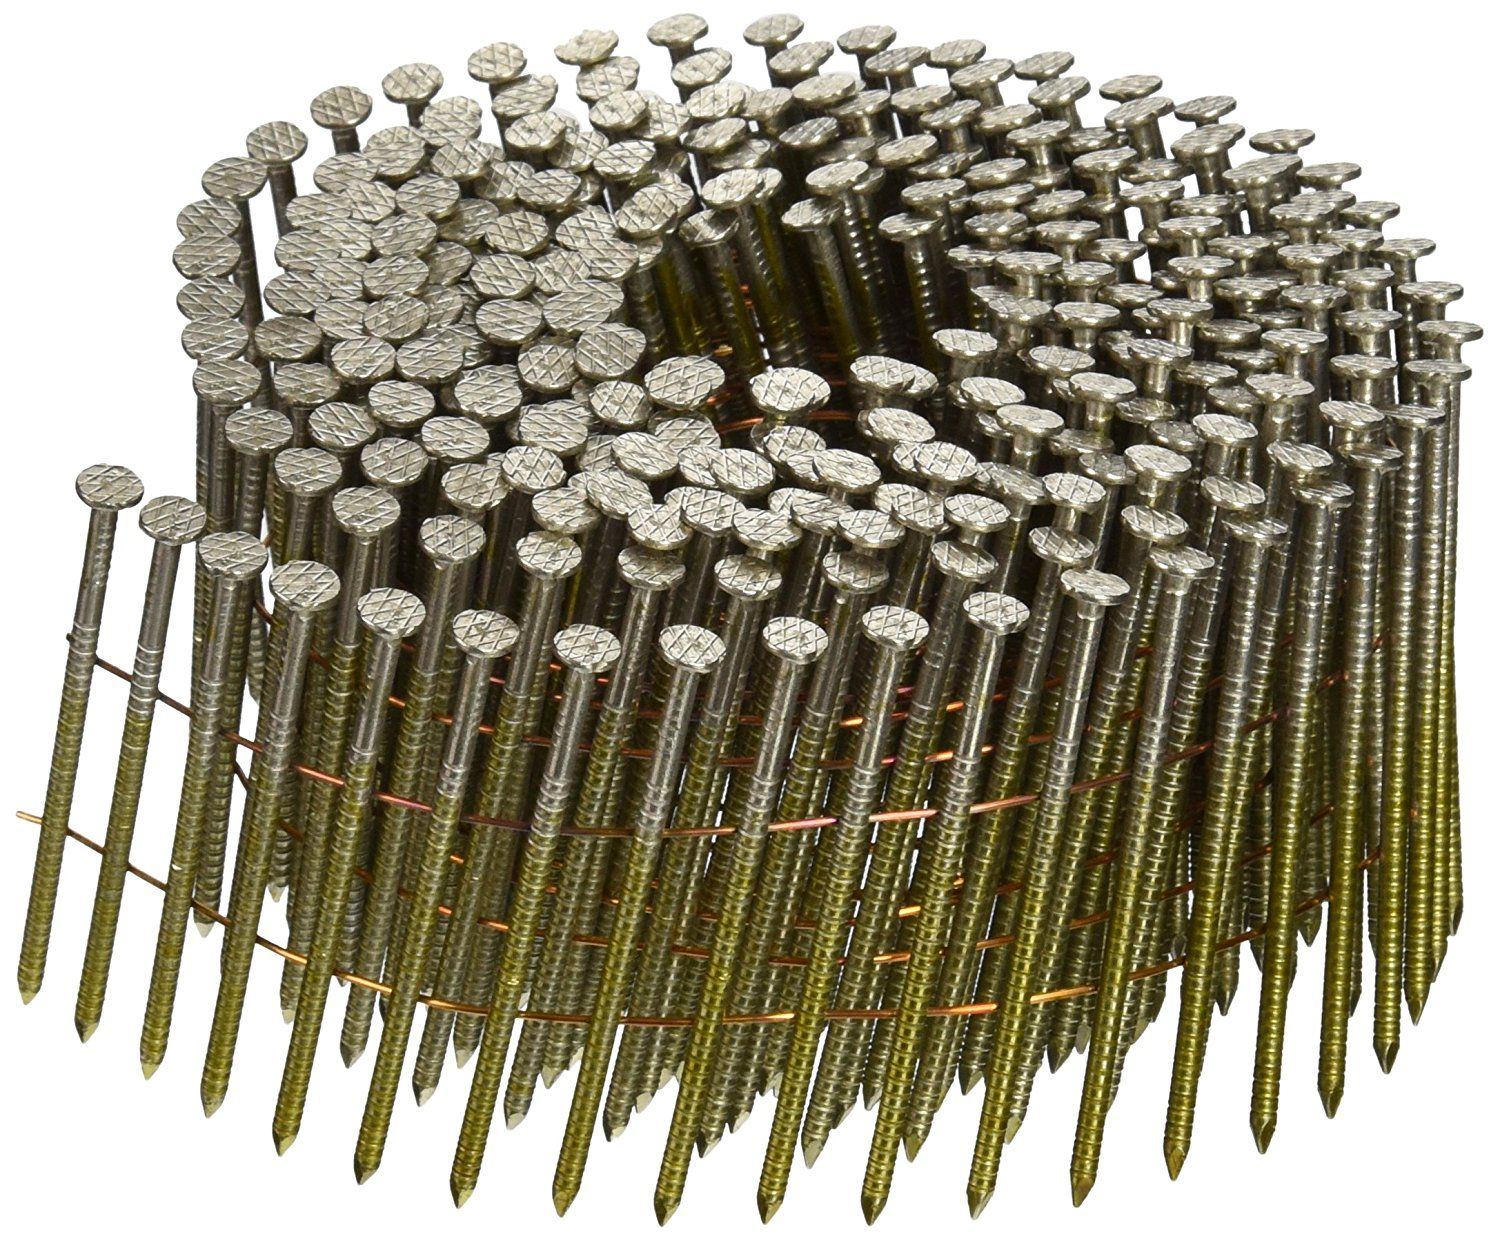 Hitachi 13352 2 1 4 Inch X 0 090 Inch Ring Stainless Steel 304 16 Degree Wire Coil Fastener 900 Pack Read More At The Stainless Steel 304 Fasteners Hitachi